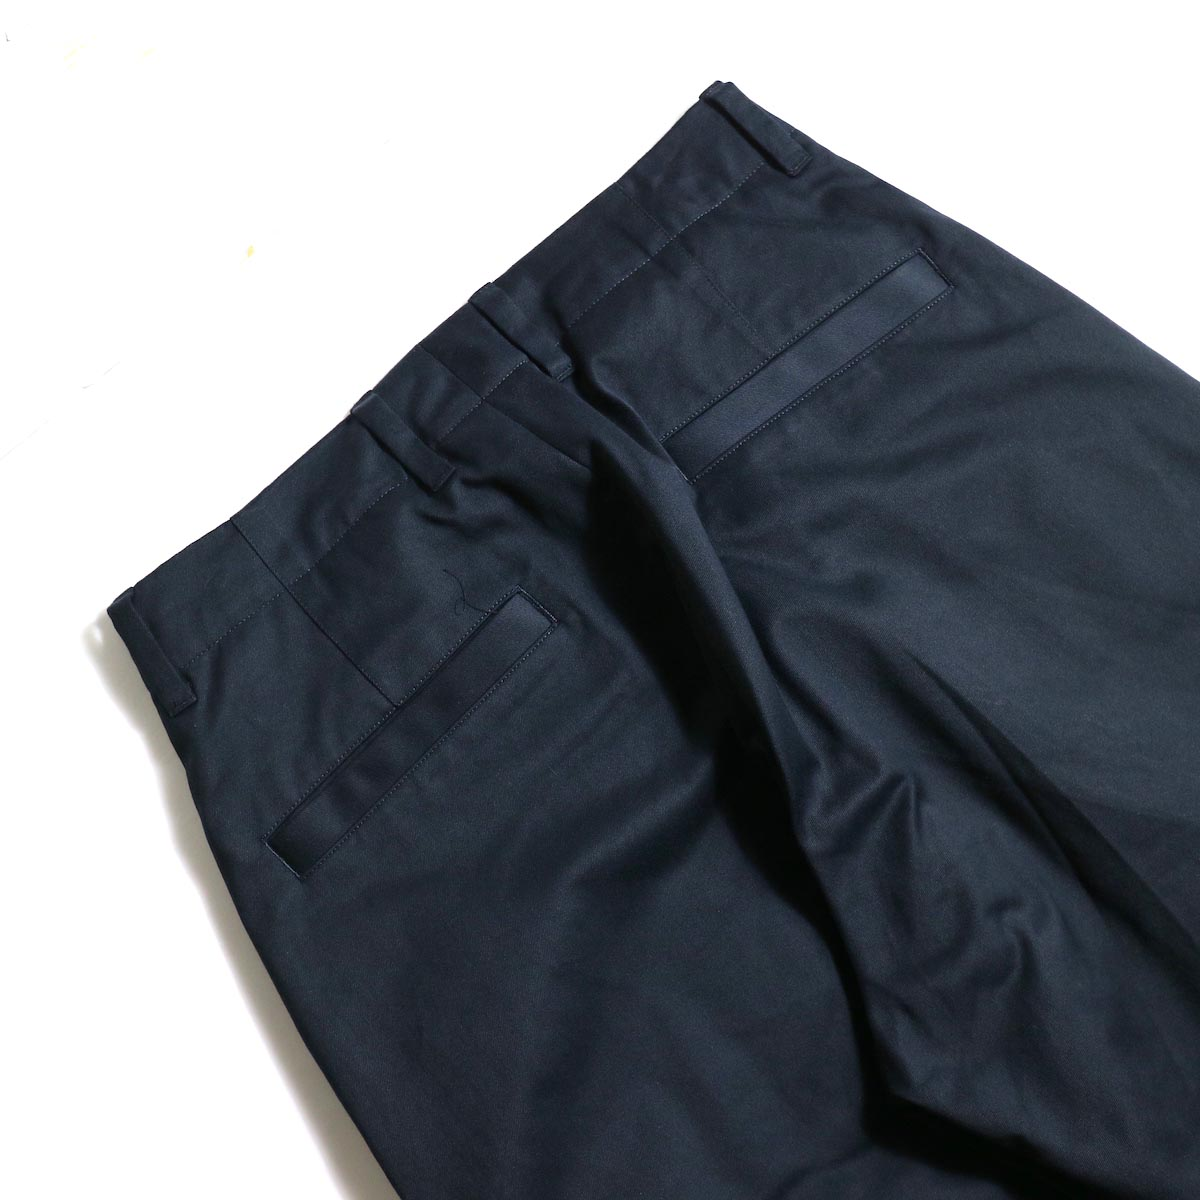 UNIVERSAL PRODUCTS / No Tuck Wide Chino Trousers (Navy) ヒップポケット